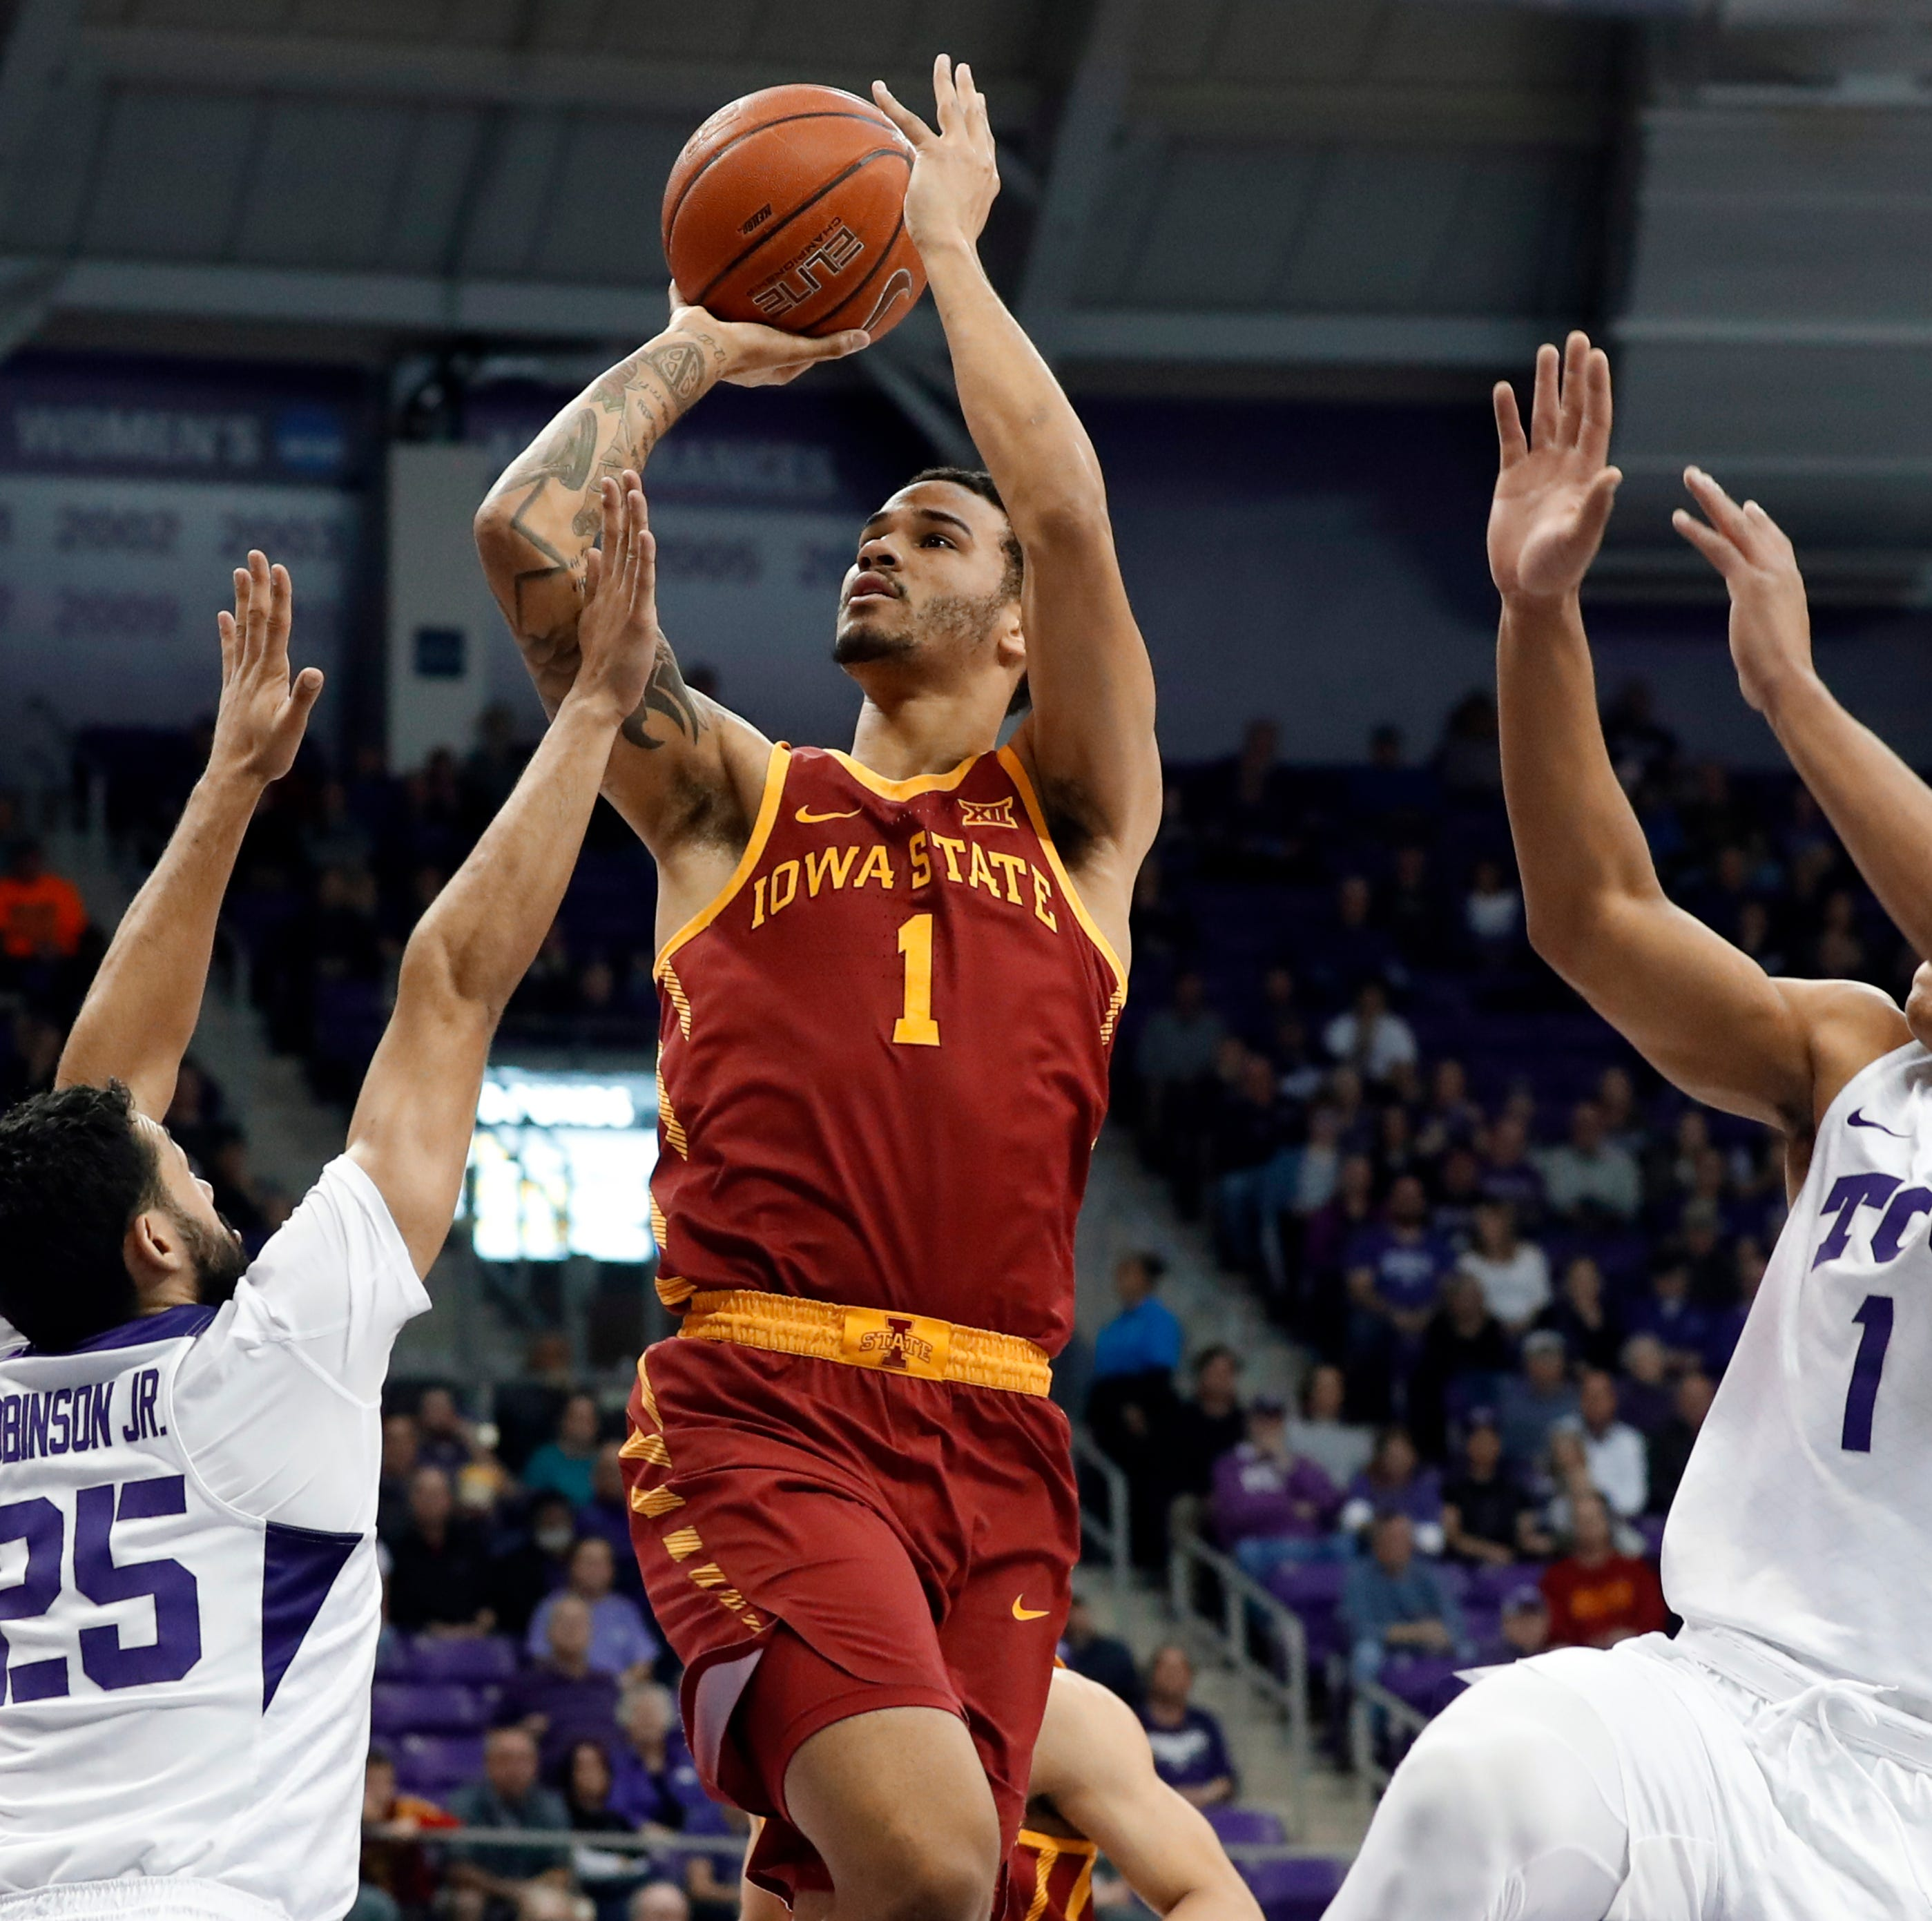 Iowa State drops second Big 12 game in a row, this time at TCU